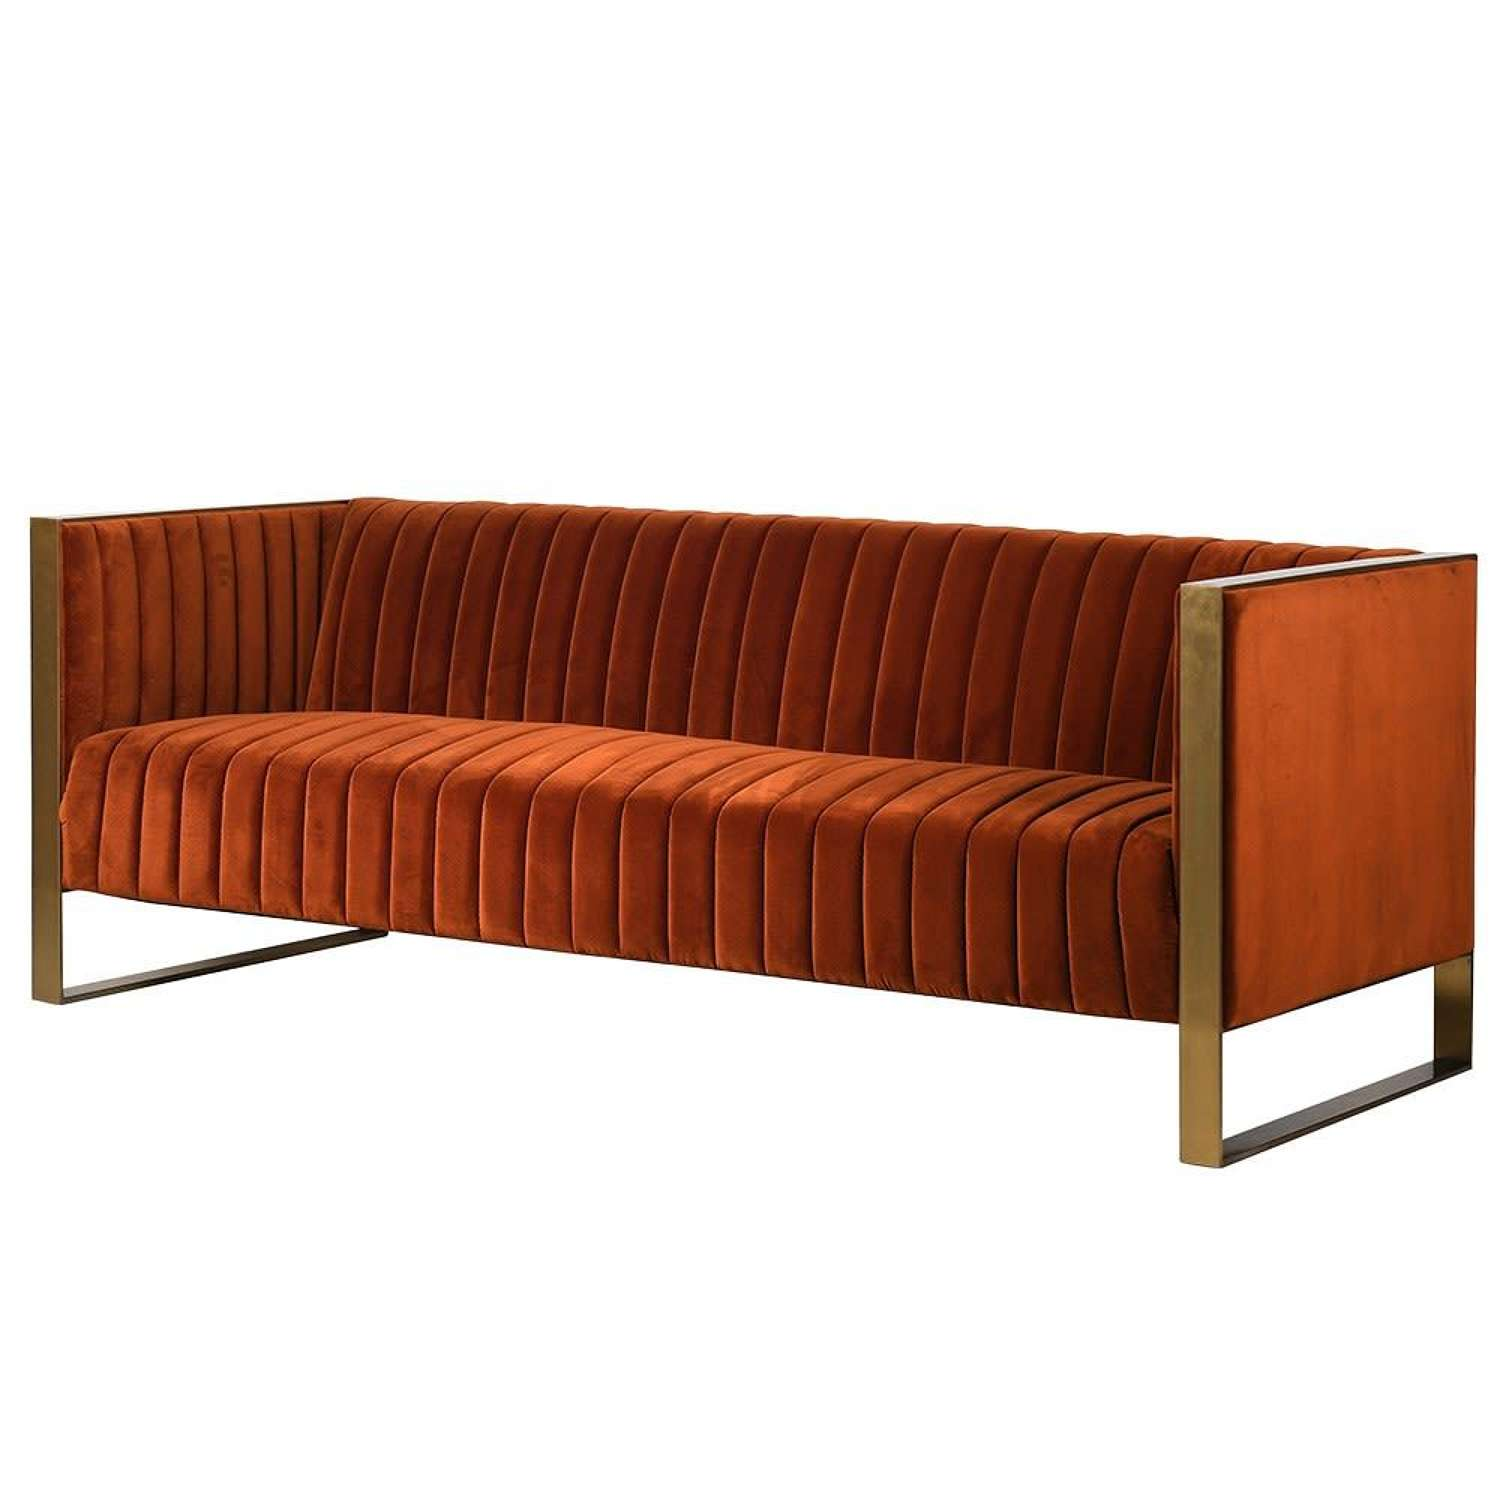 Luxury Ribbed Sofa with Gold Coloured Staines Steel Frame - 3 Seater